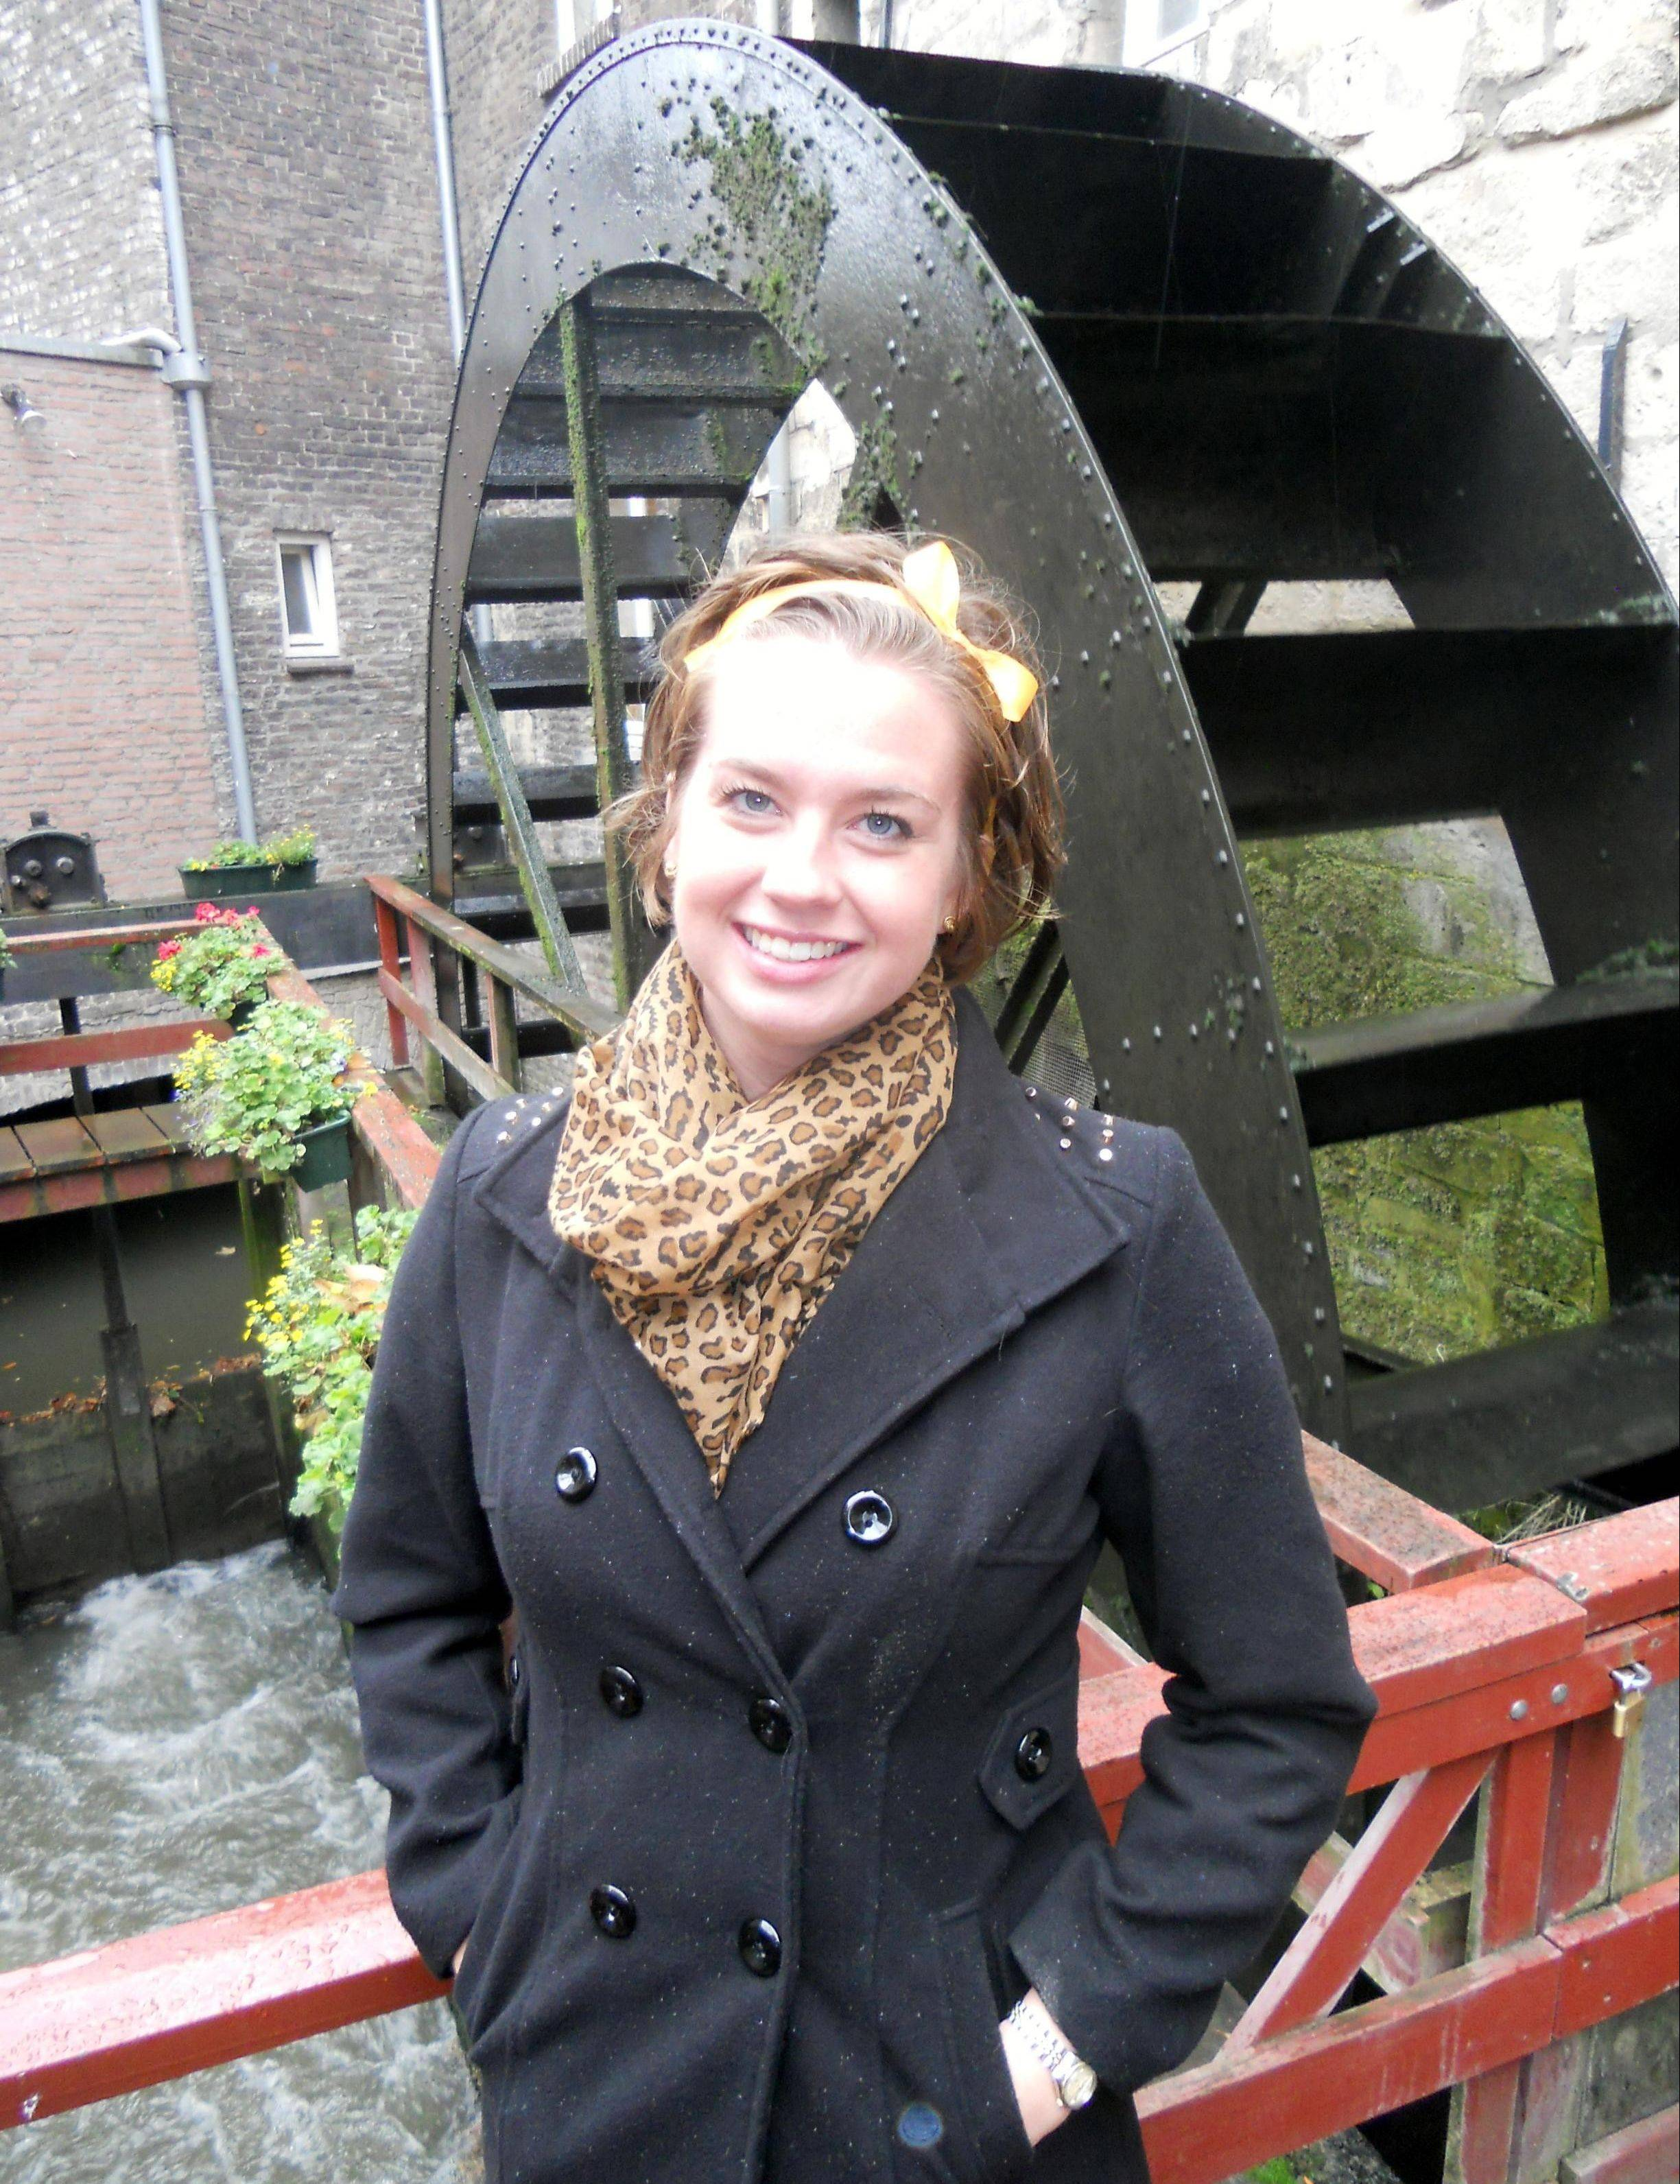 Rachel Cliburn of Long Grove, seen in visiting Amsterdam, is spending the year getting her master's degree in neuroscience in the Netherlands after winning a prestigious Fulbright grant..